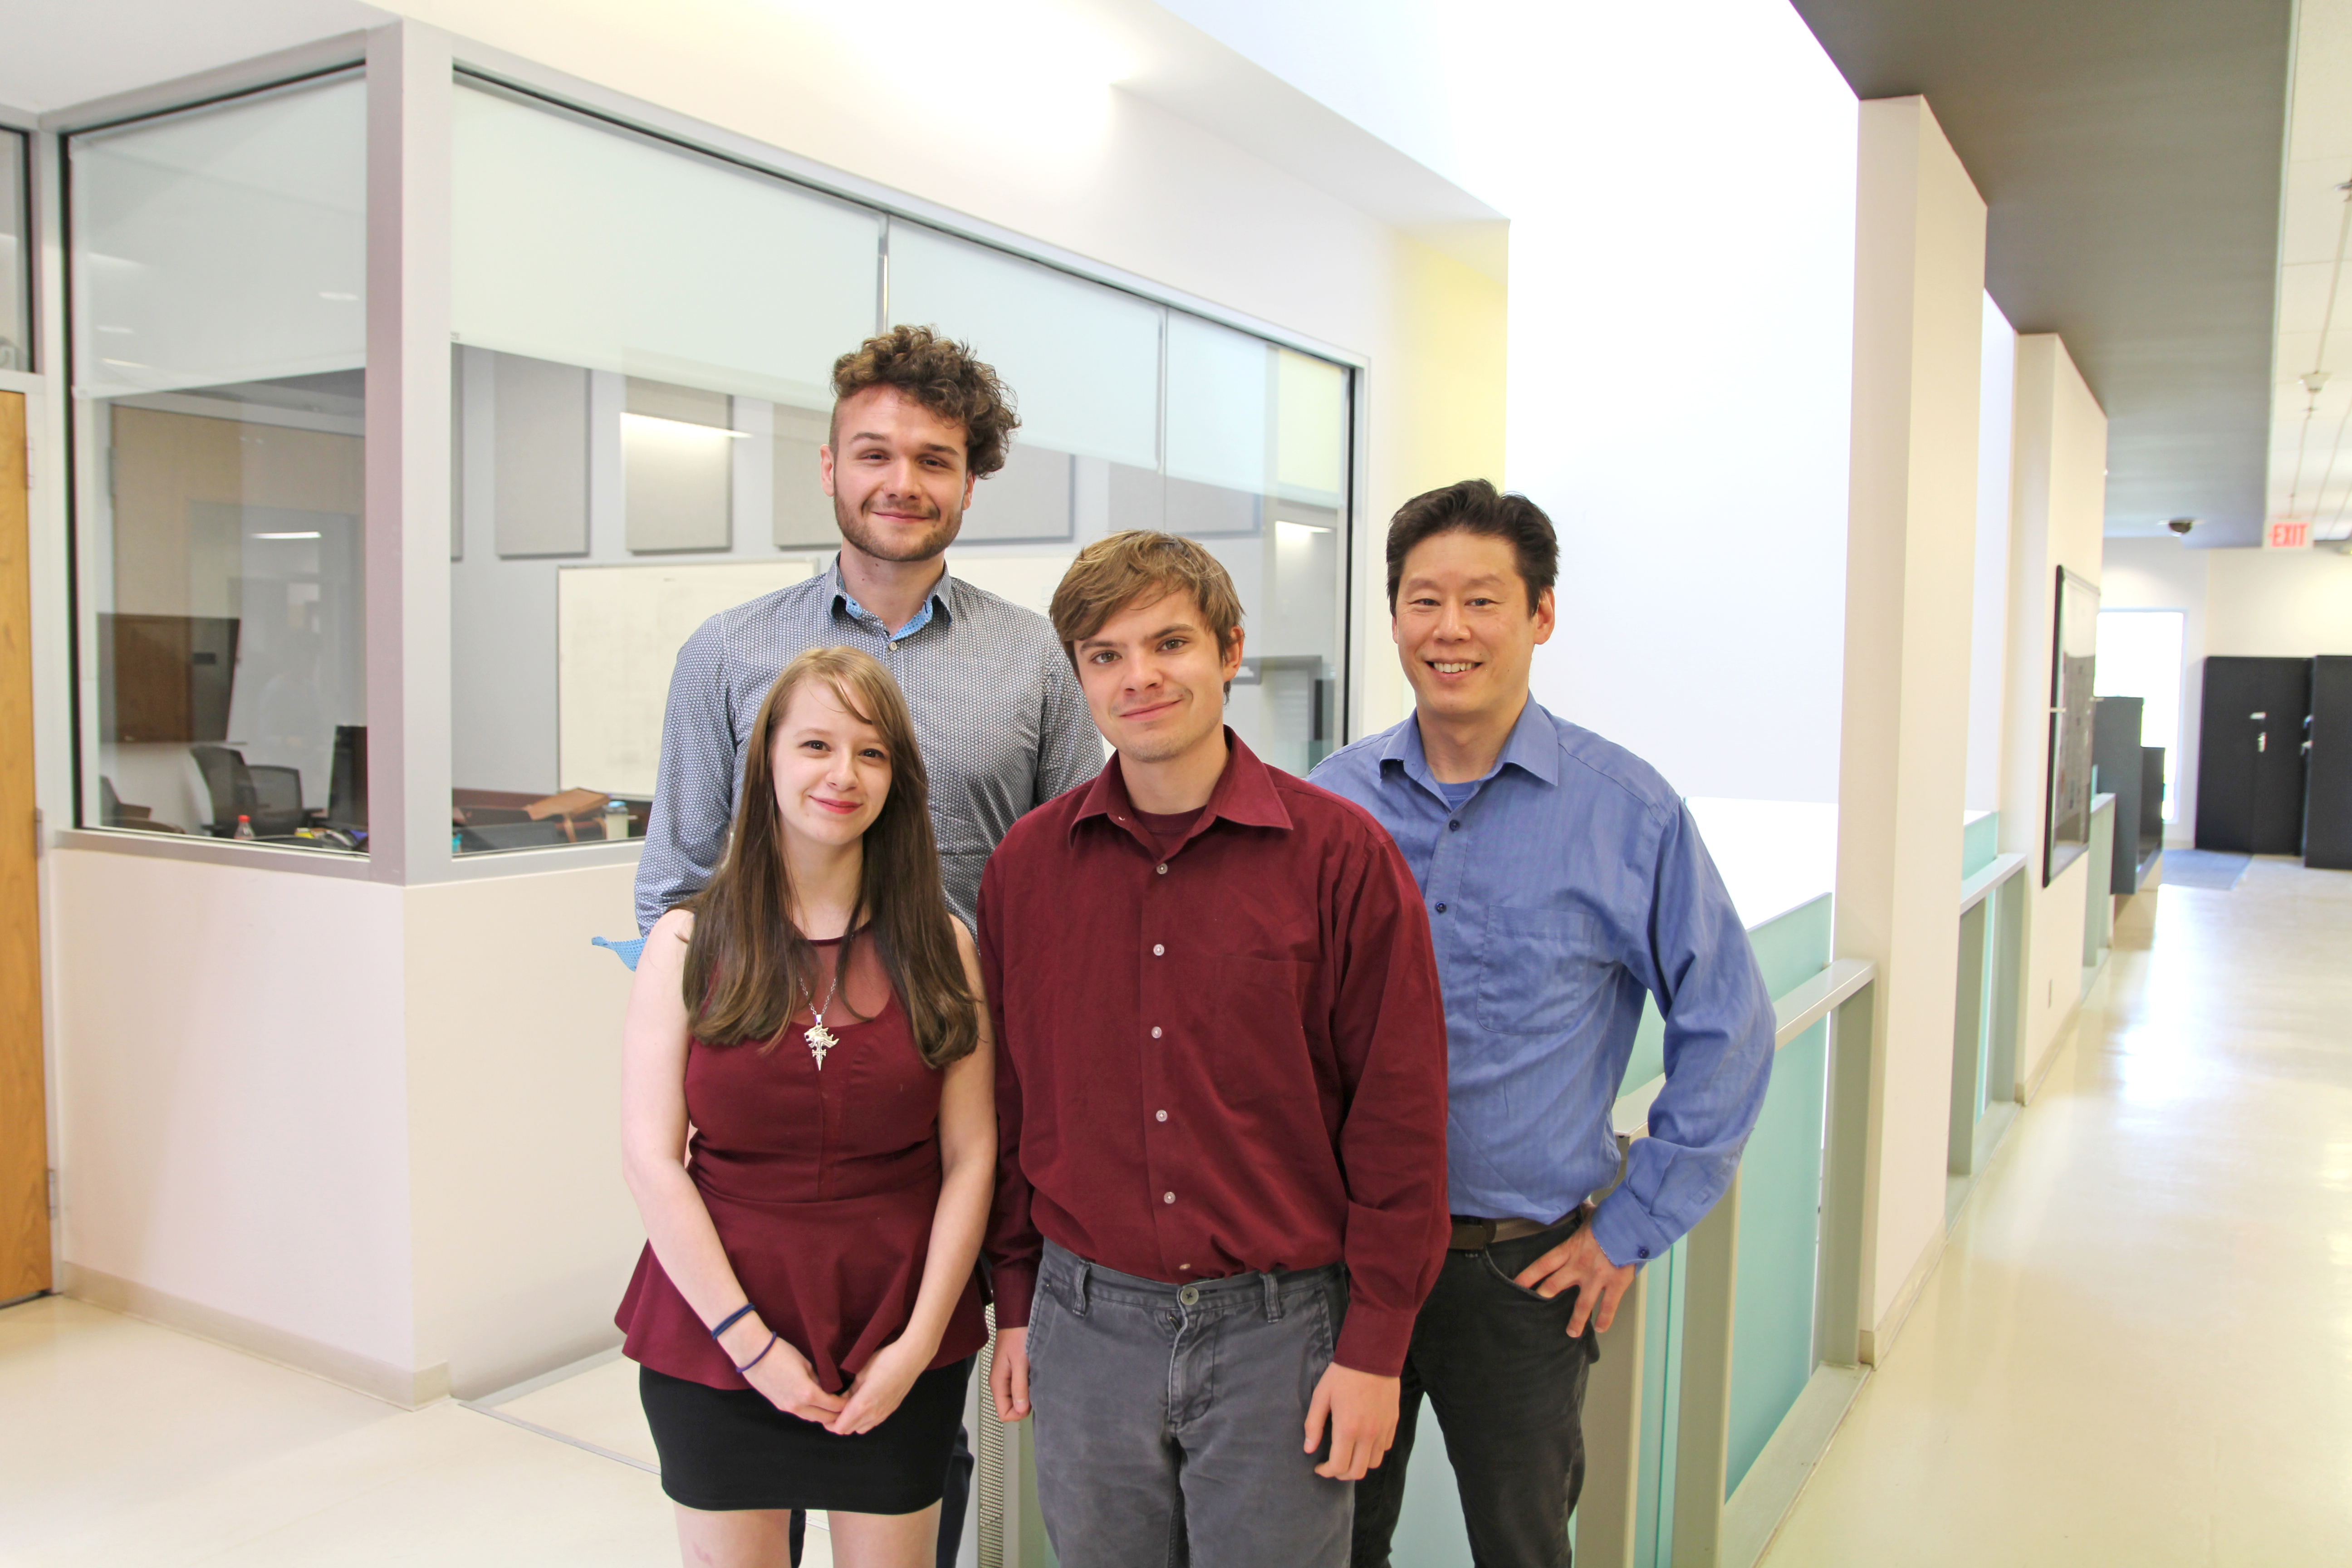 (L-R) James McCormick, Lisa Ewen, Connor Little and Dr. Arnold Kim.